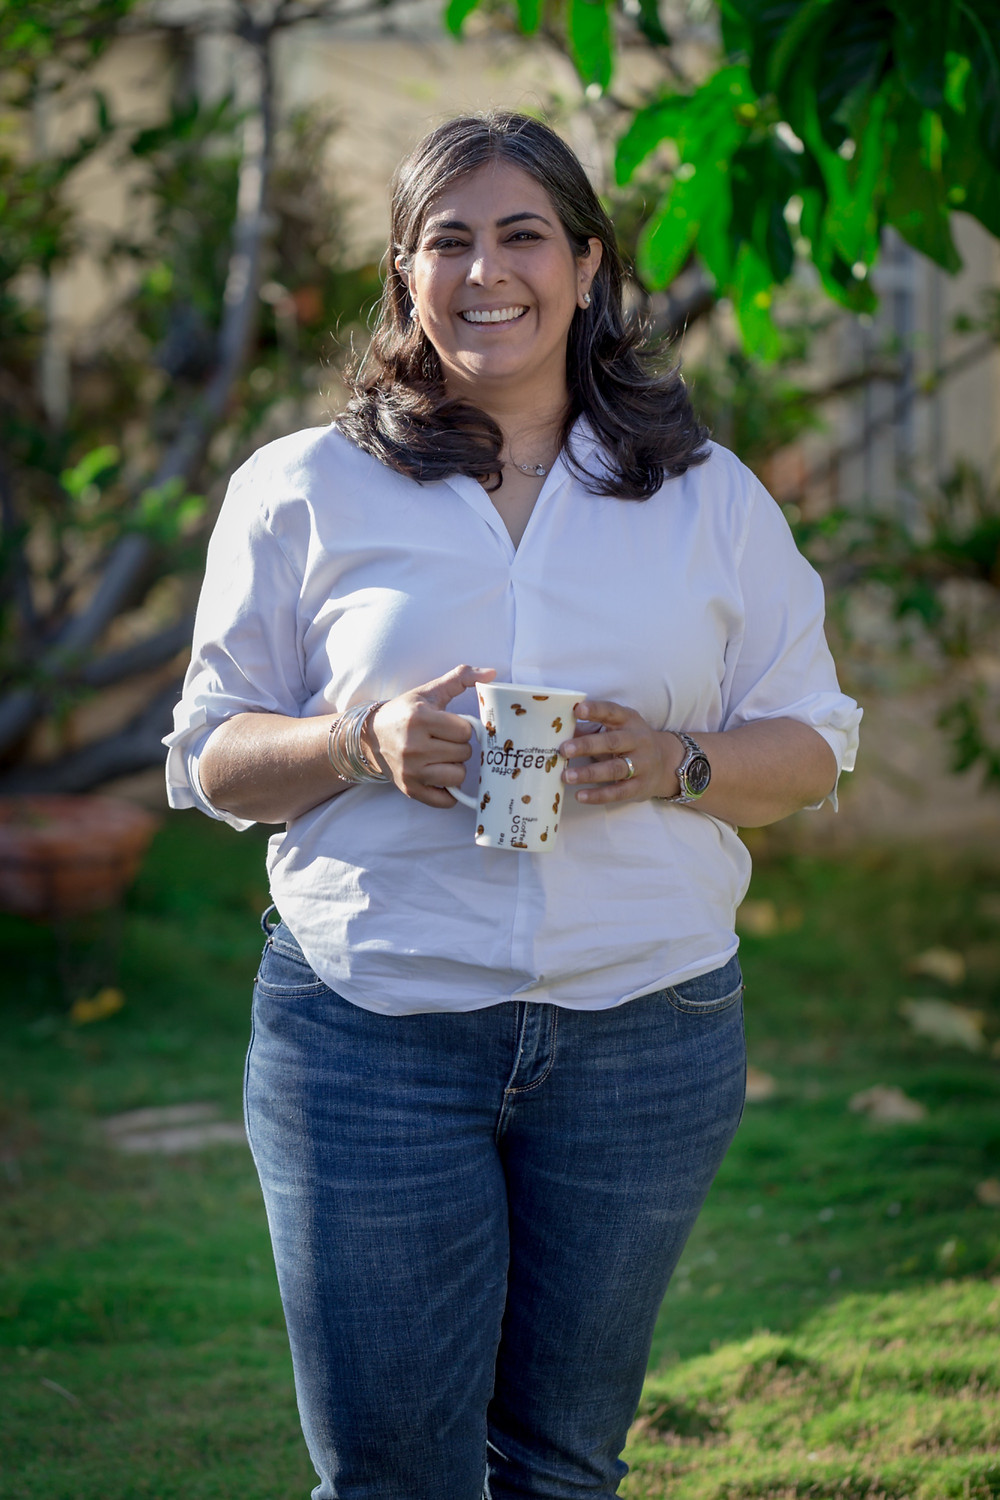 Kirti , the consultant, holding tea in a garden.